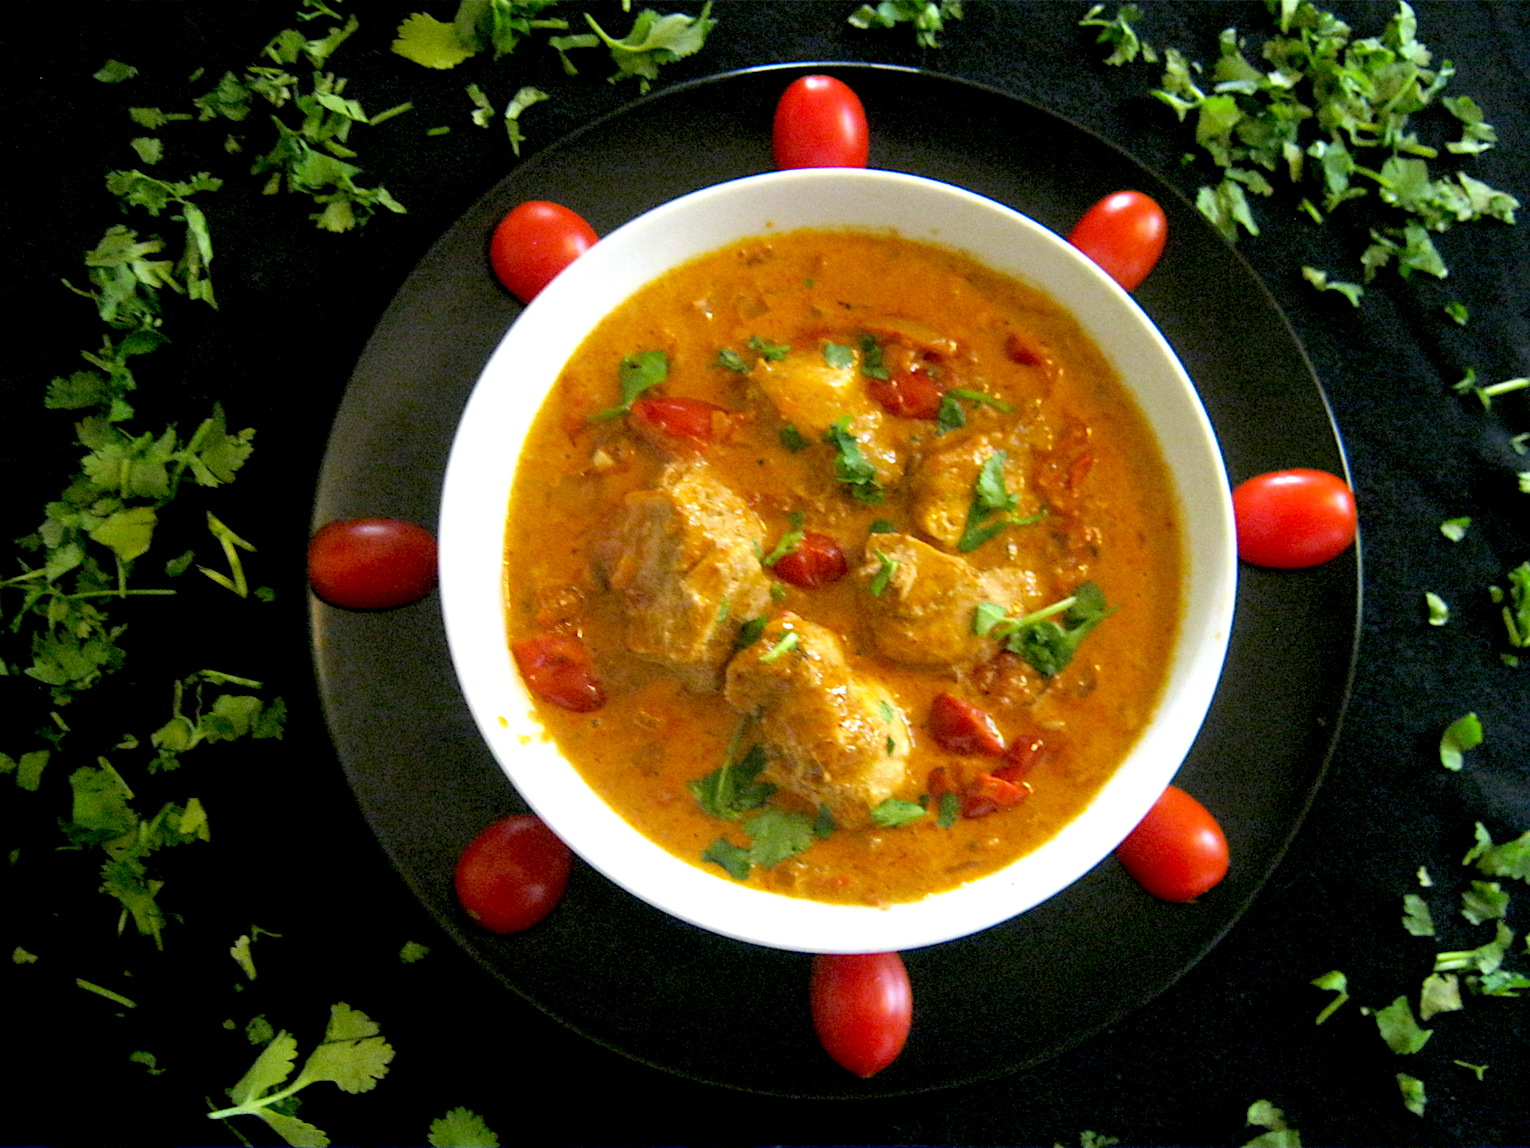 Butter Chicken garnished with tomatoes and coriander leaves